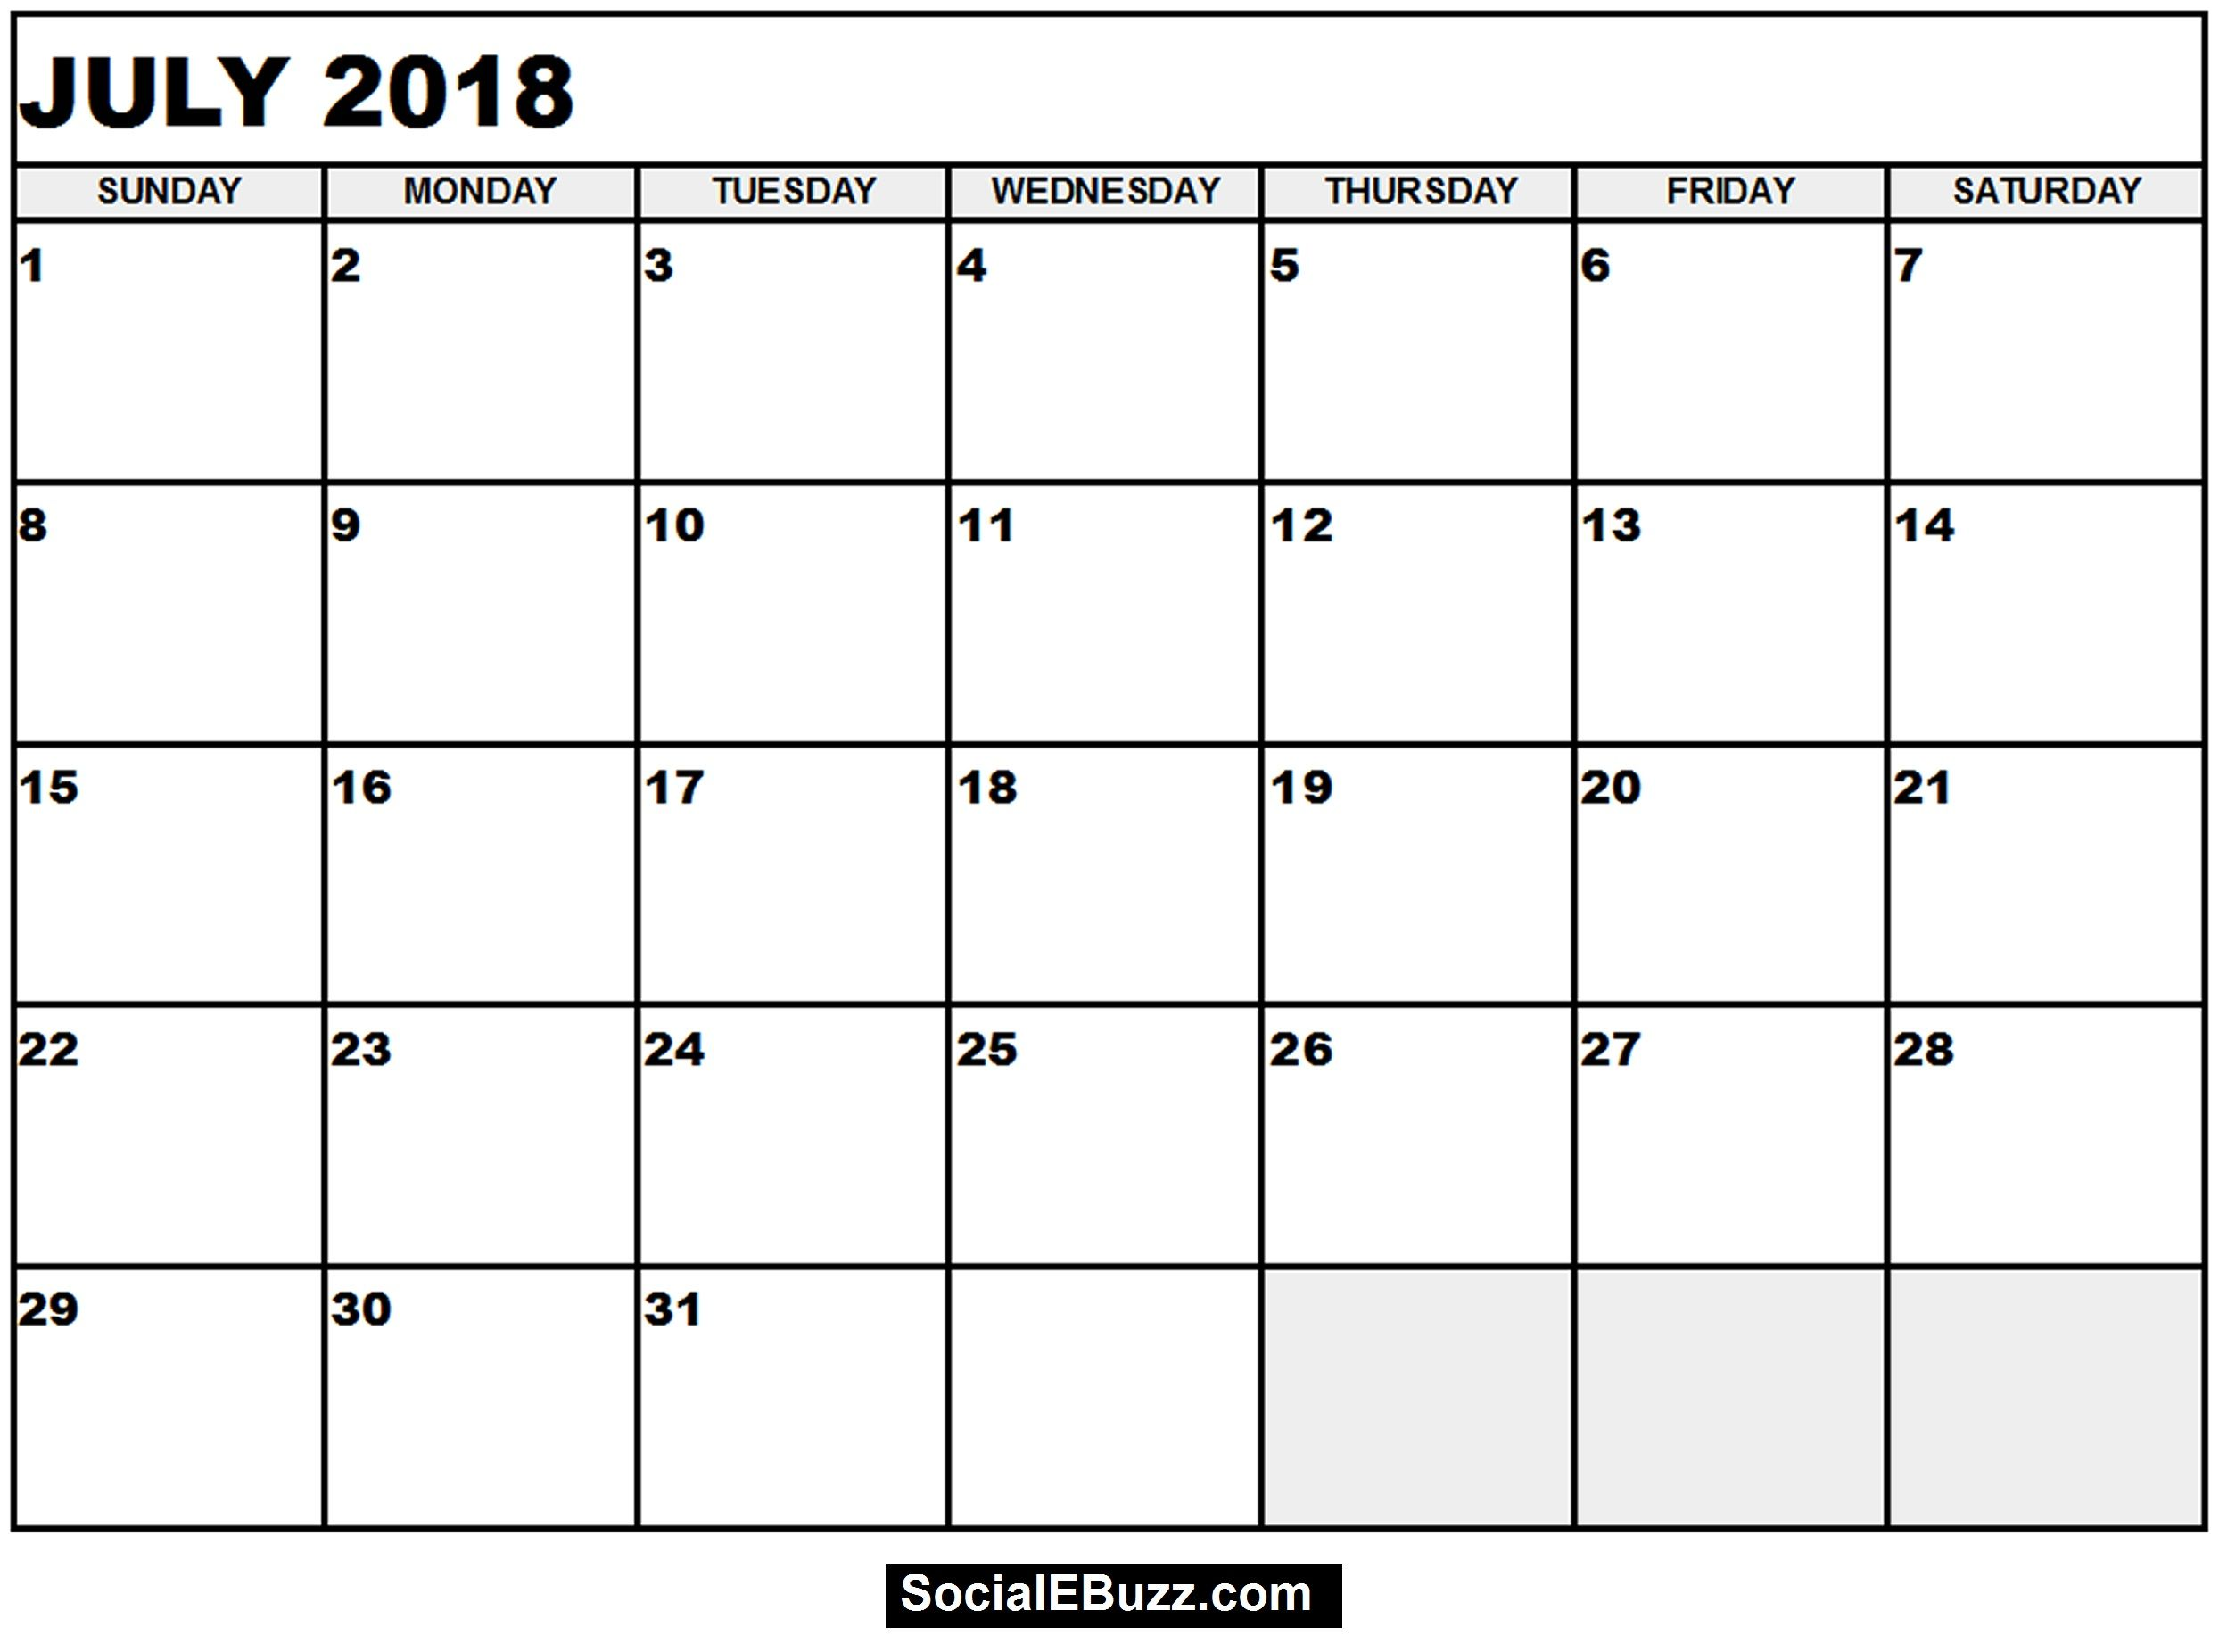 july 2018 calendar template word